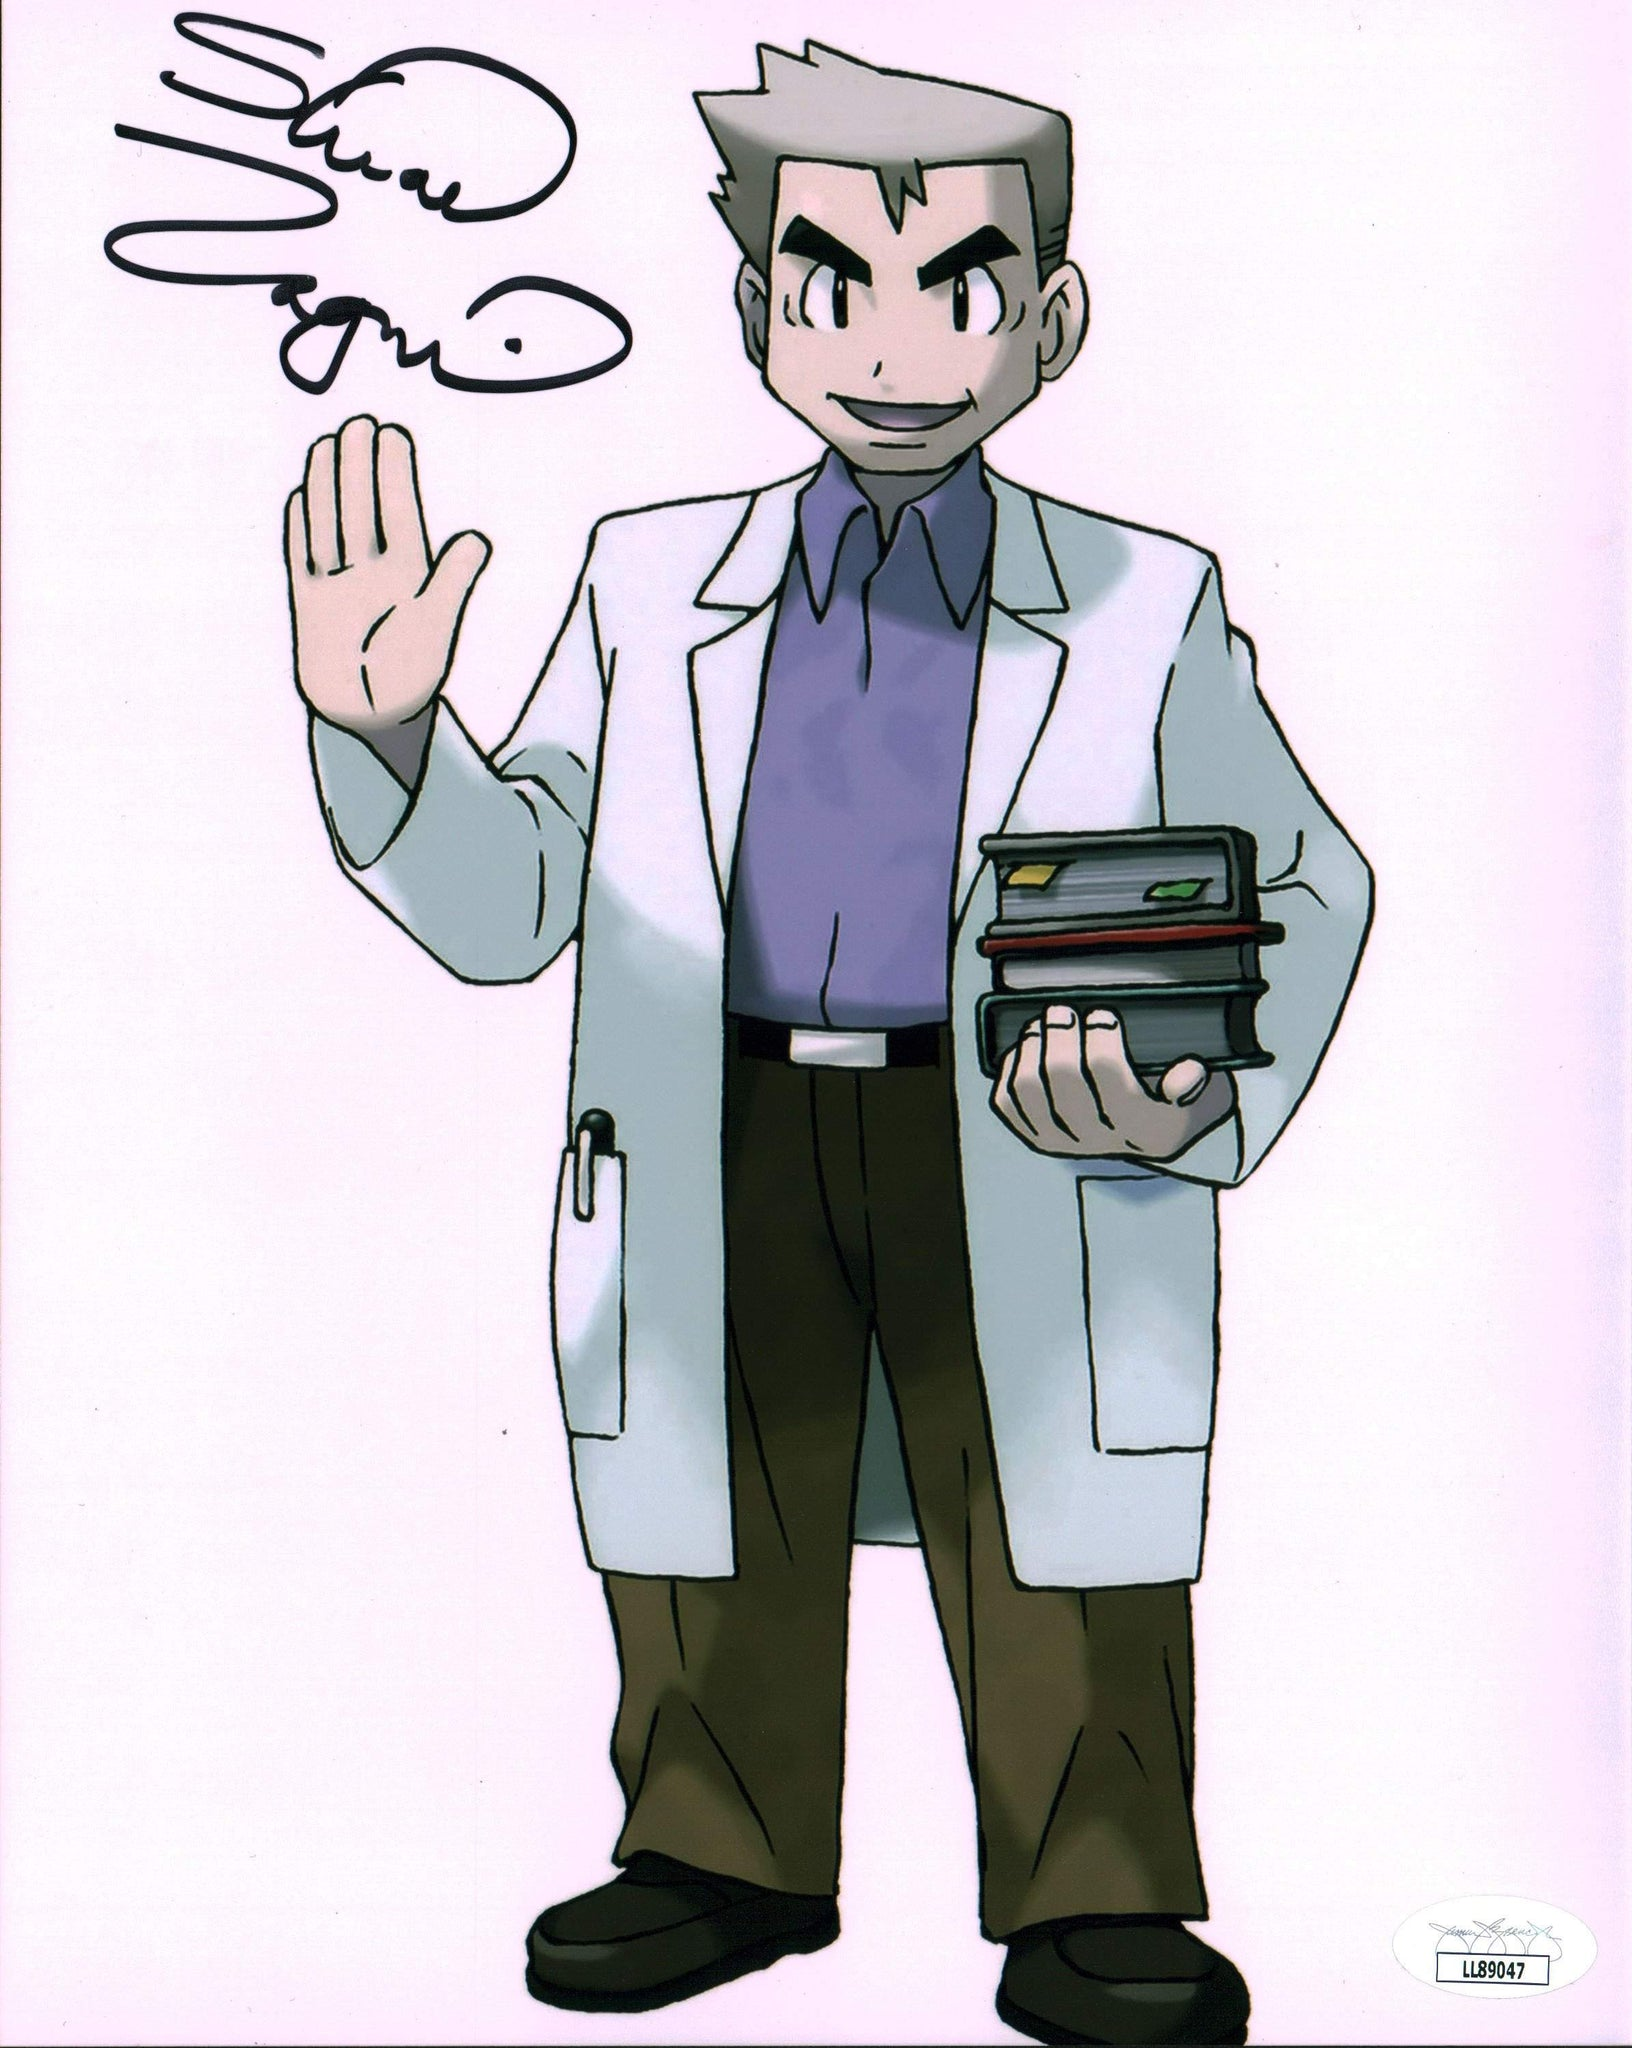 Stuart Zagnit Pokemon 8x10 Photo Signed Autograph JSA Certified COA Auto GalaxyCon